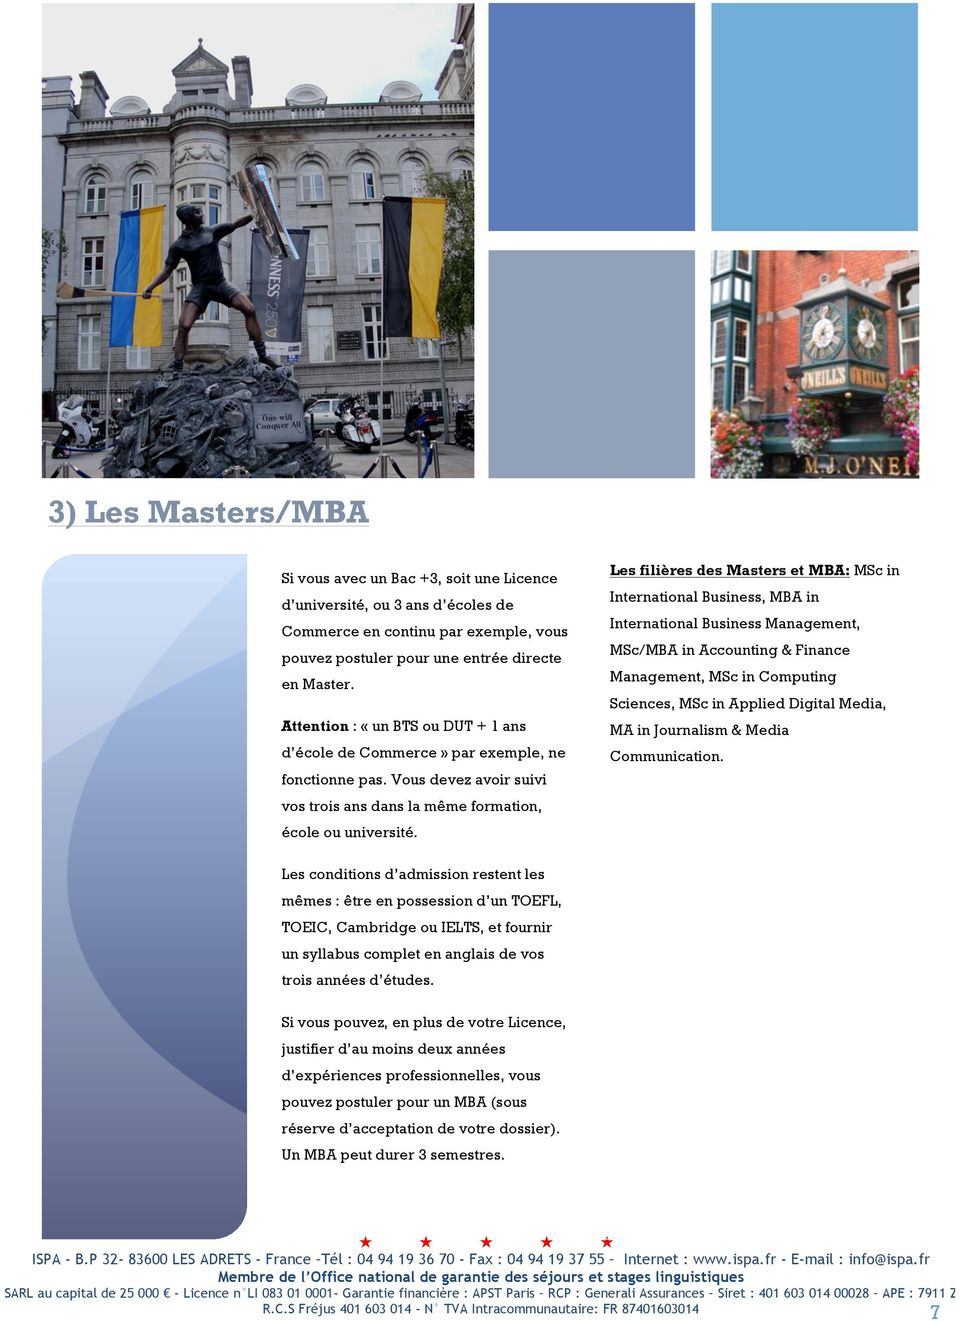 Les filières des Masters et MBA: MSc in International Business, MBA in International Business Management, MSc/MBA in Accounting & Finance Management, MSc in Computing Sciences, MSc in Applied Digital